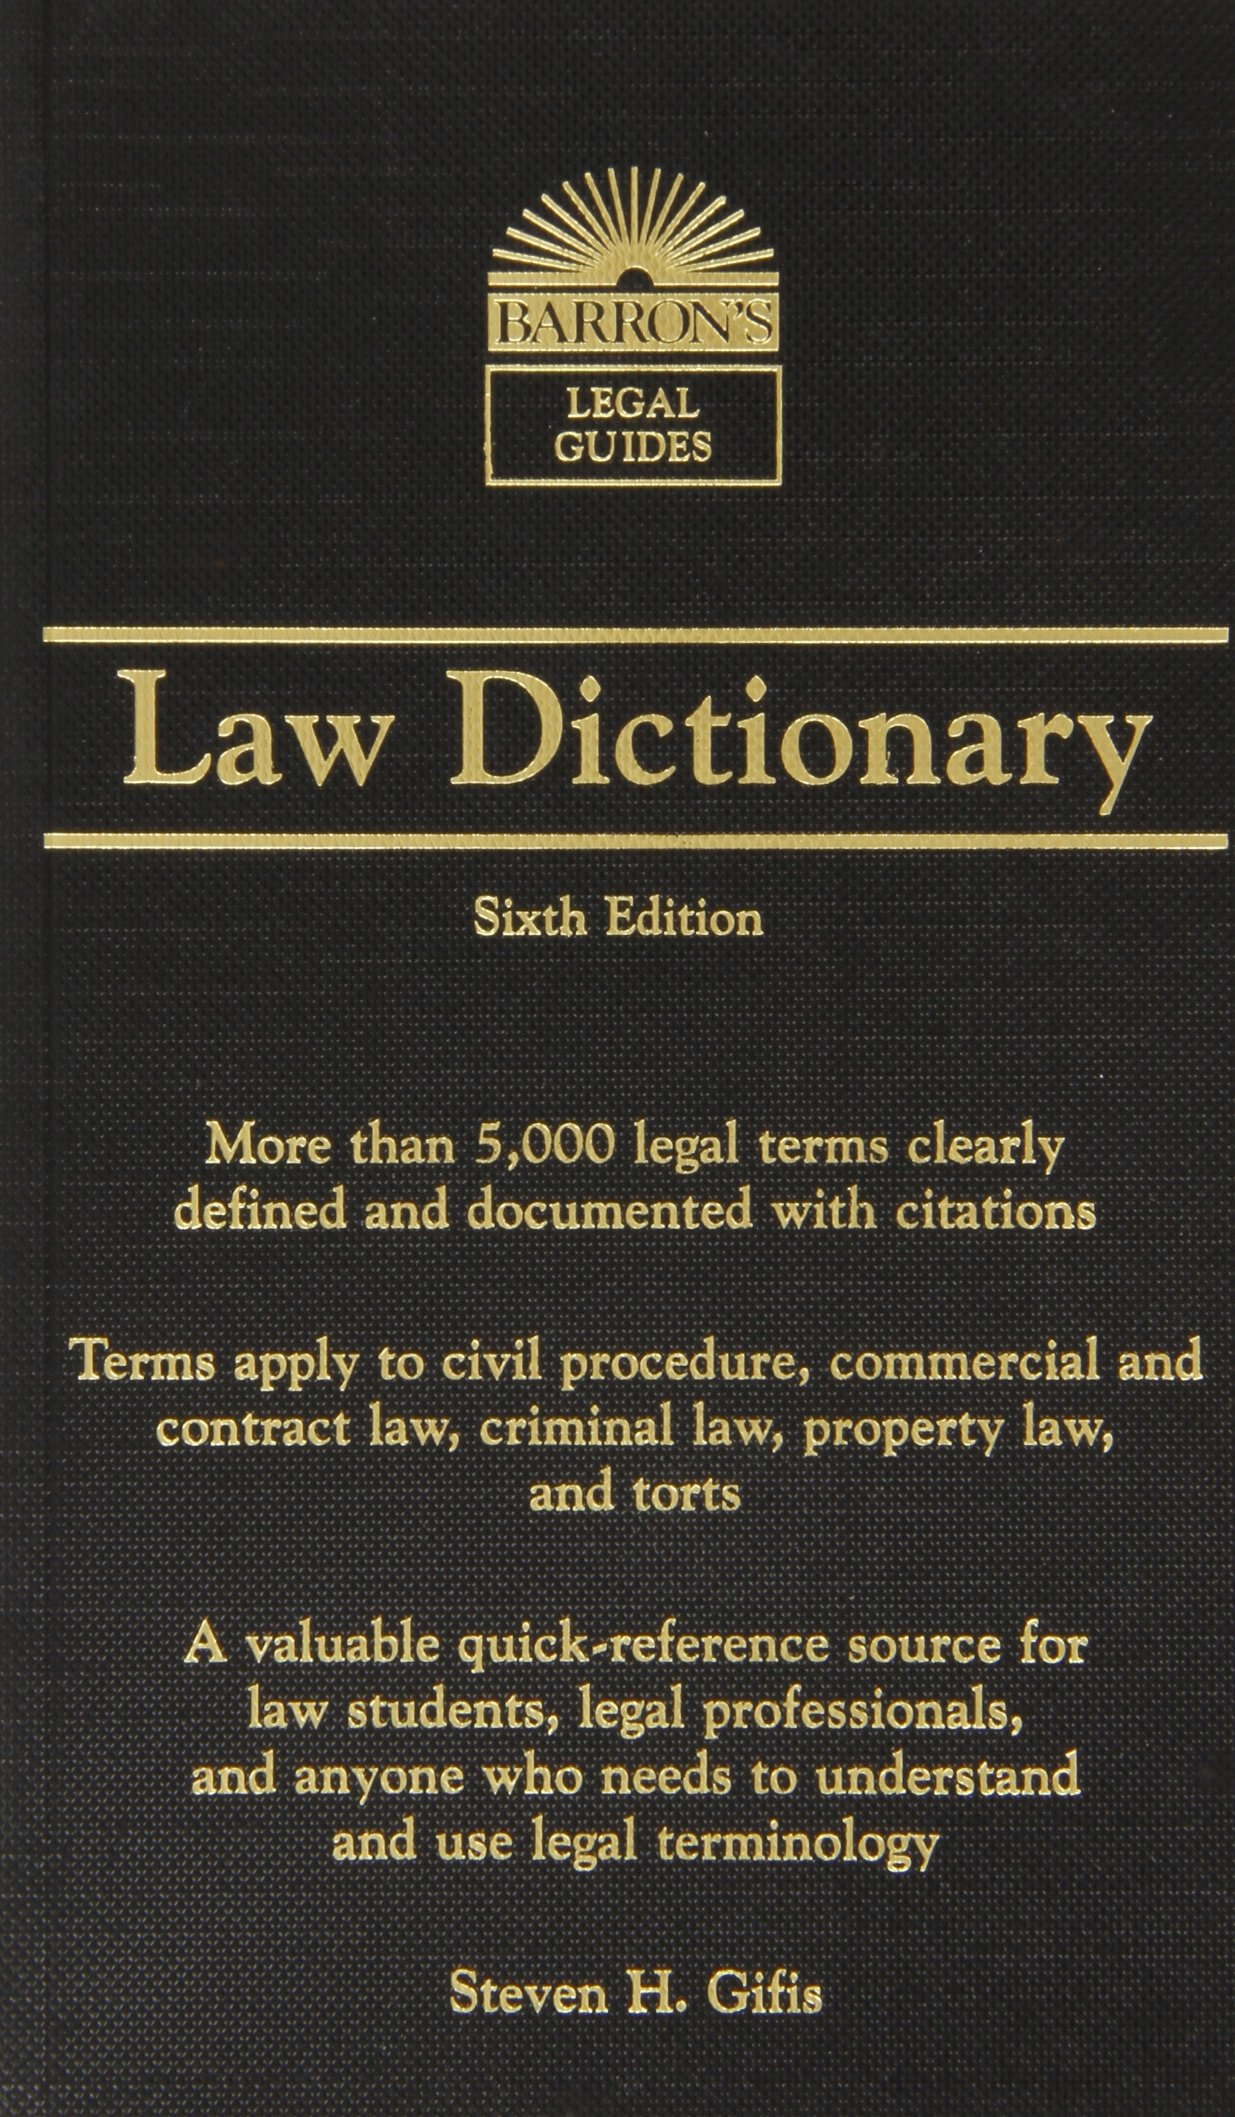 Barron's Law Dictionary: Mass Market Edition (Barron's Legal Guides) by Barrons Educational Series